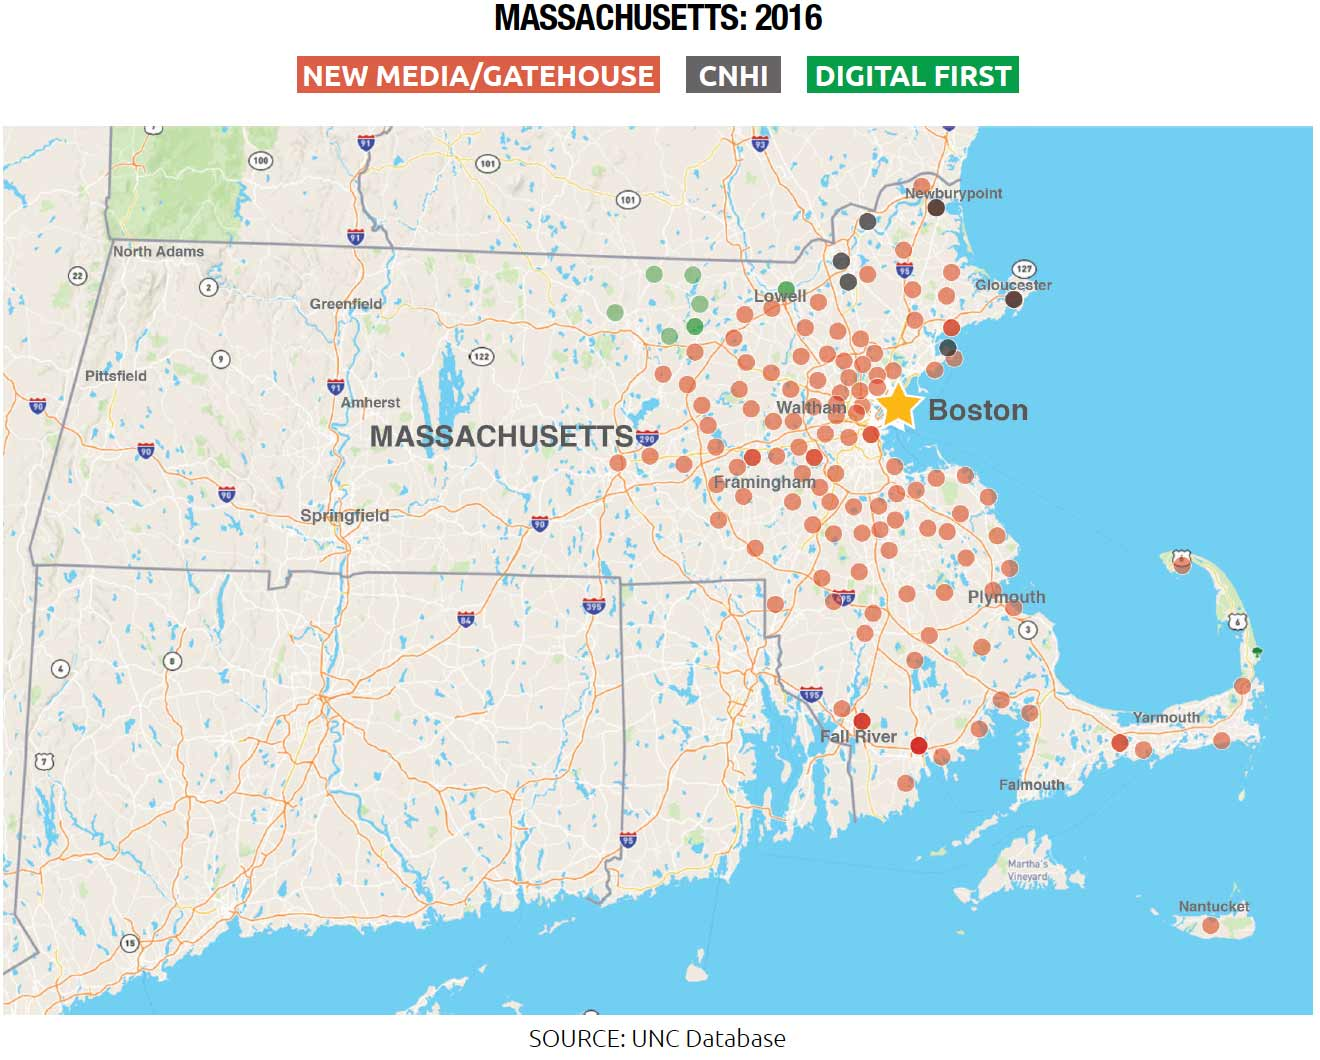 Investment Companies & Massachusetts Local News Owners 2016